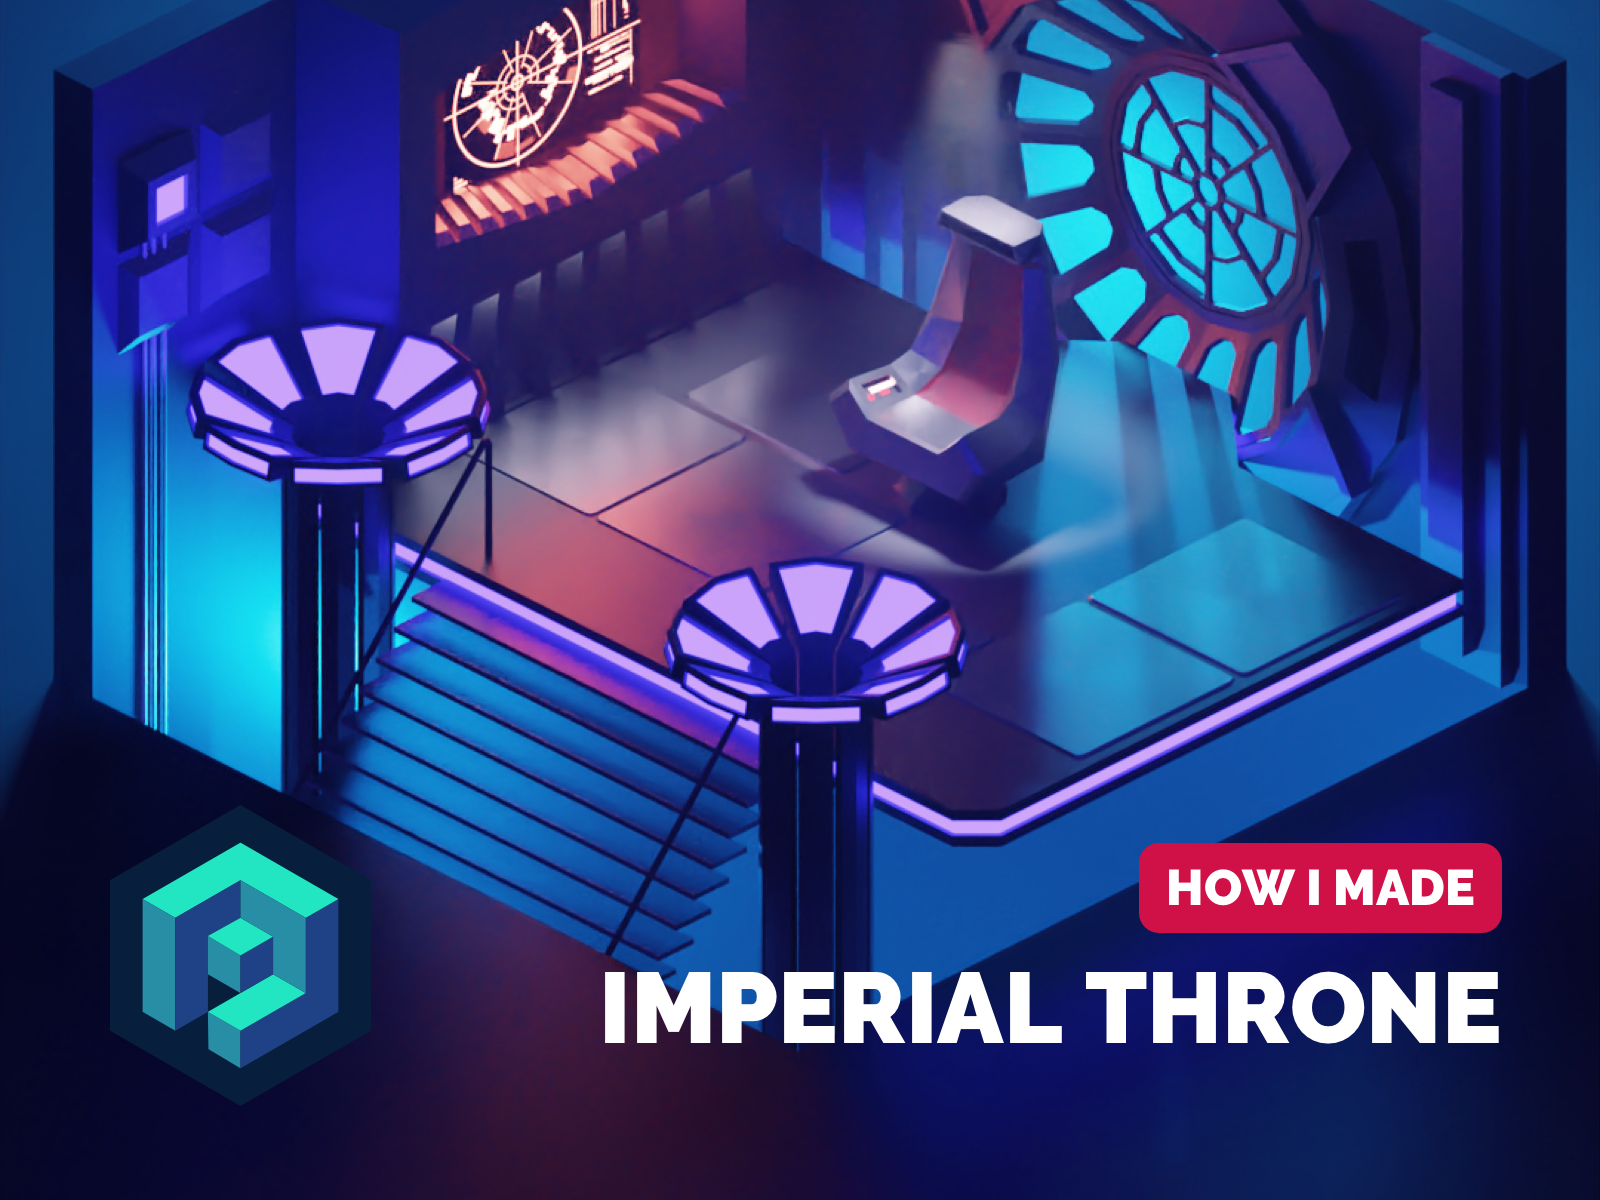 Imperial Throne Room Tutorial By Roman Klco On Dribbble